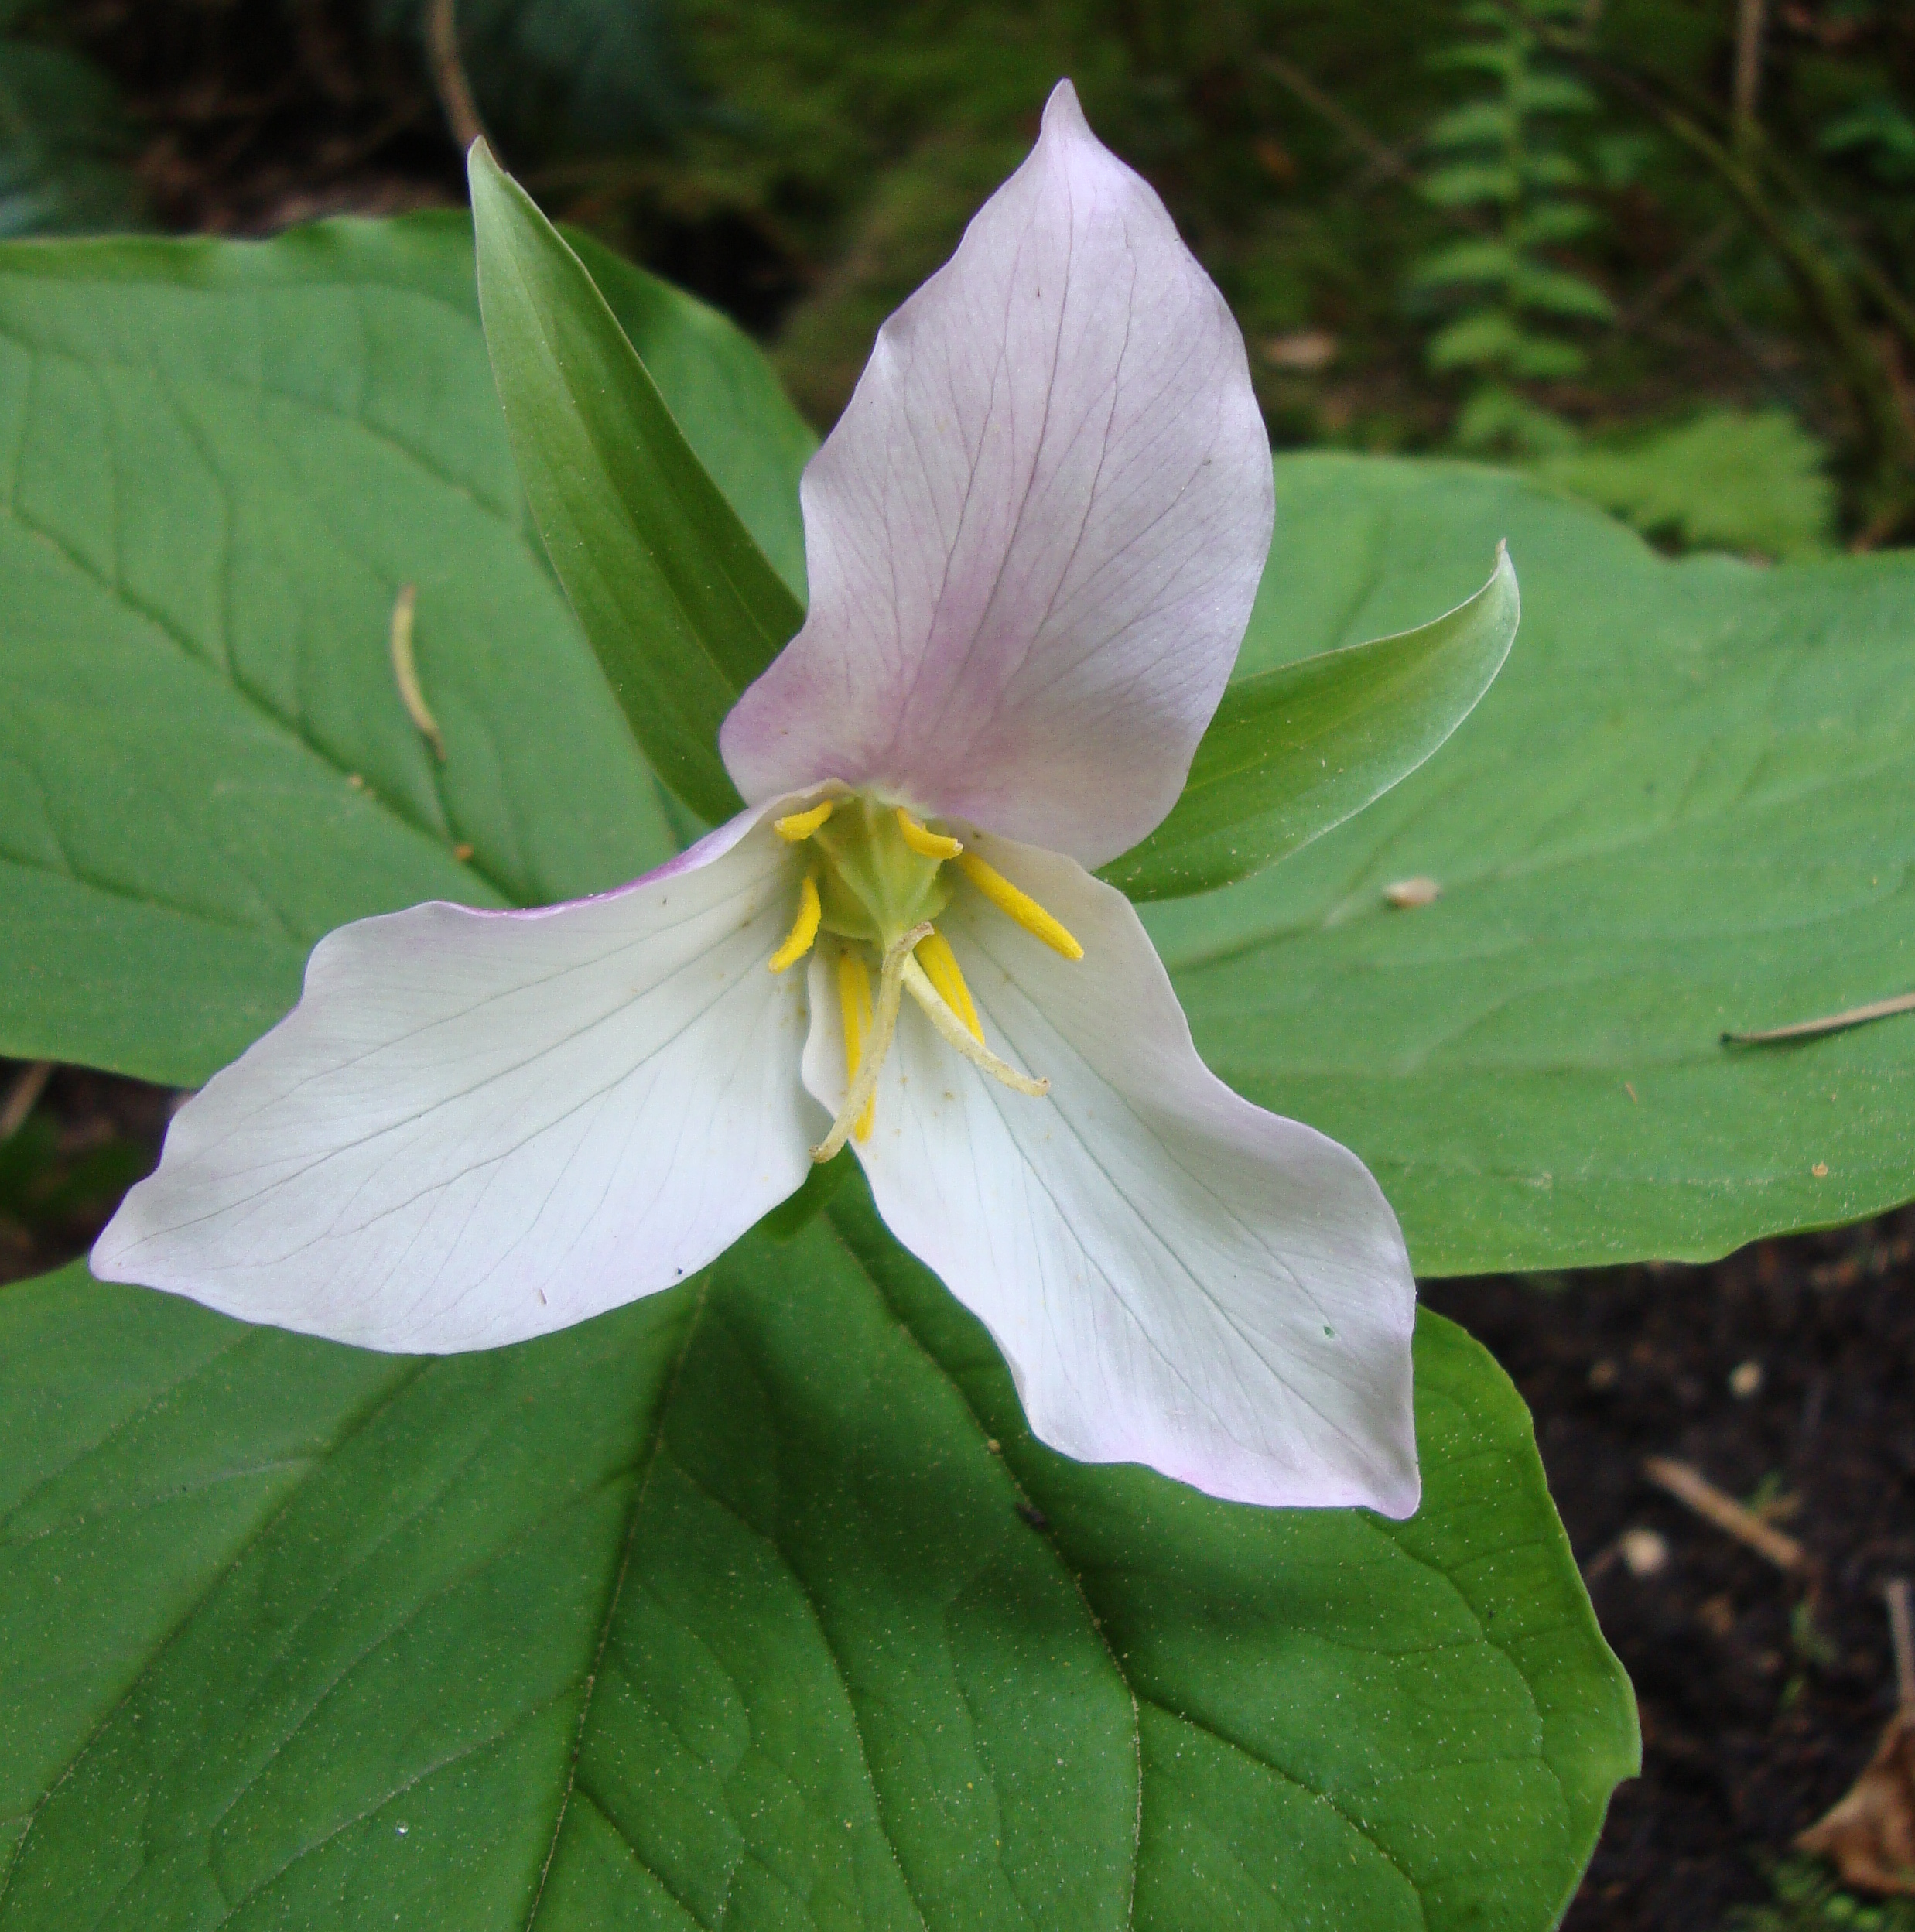 trillium flower essence  flower essences  flower remedies  tree, Beautiful flower